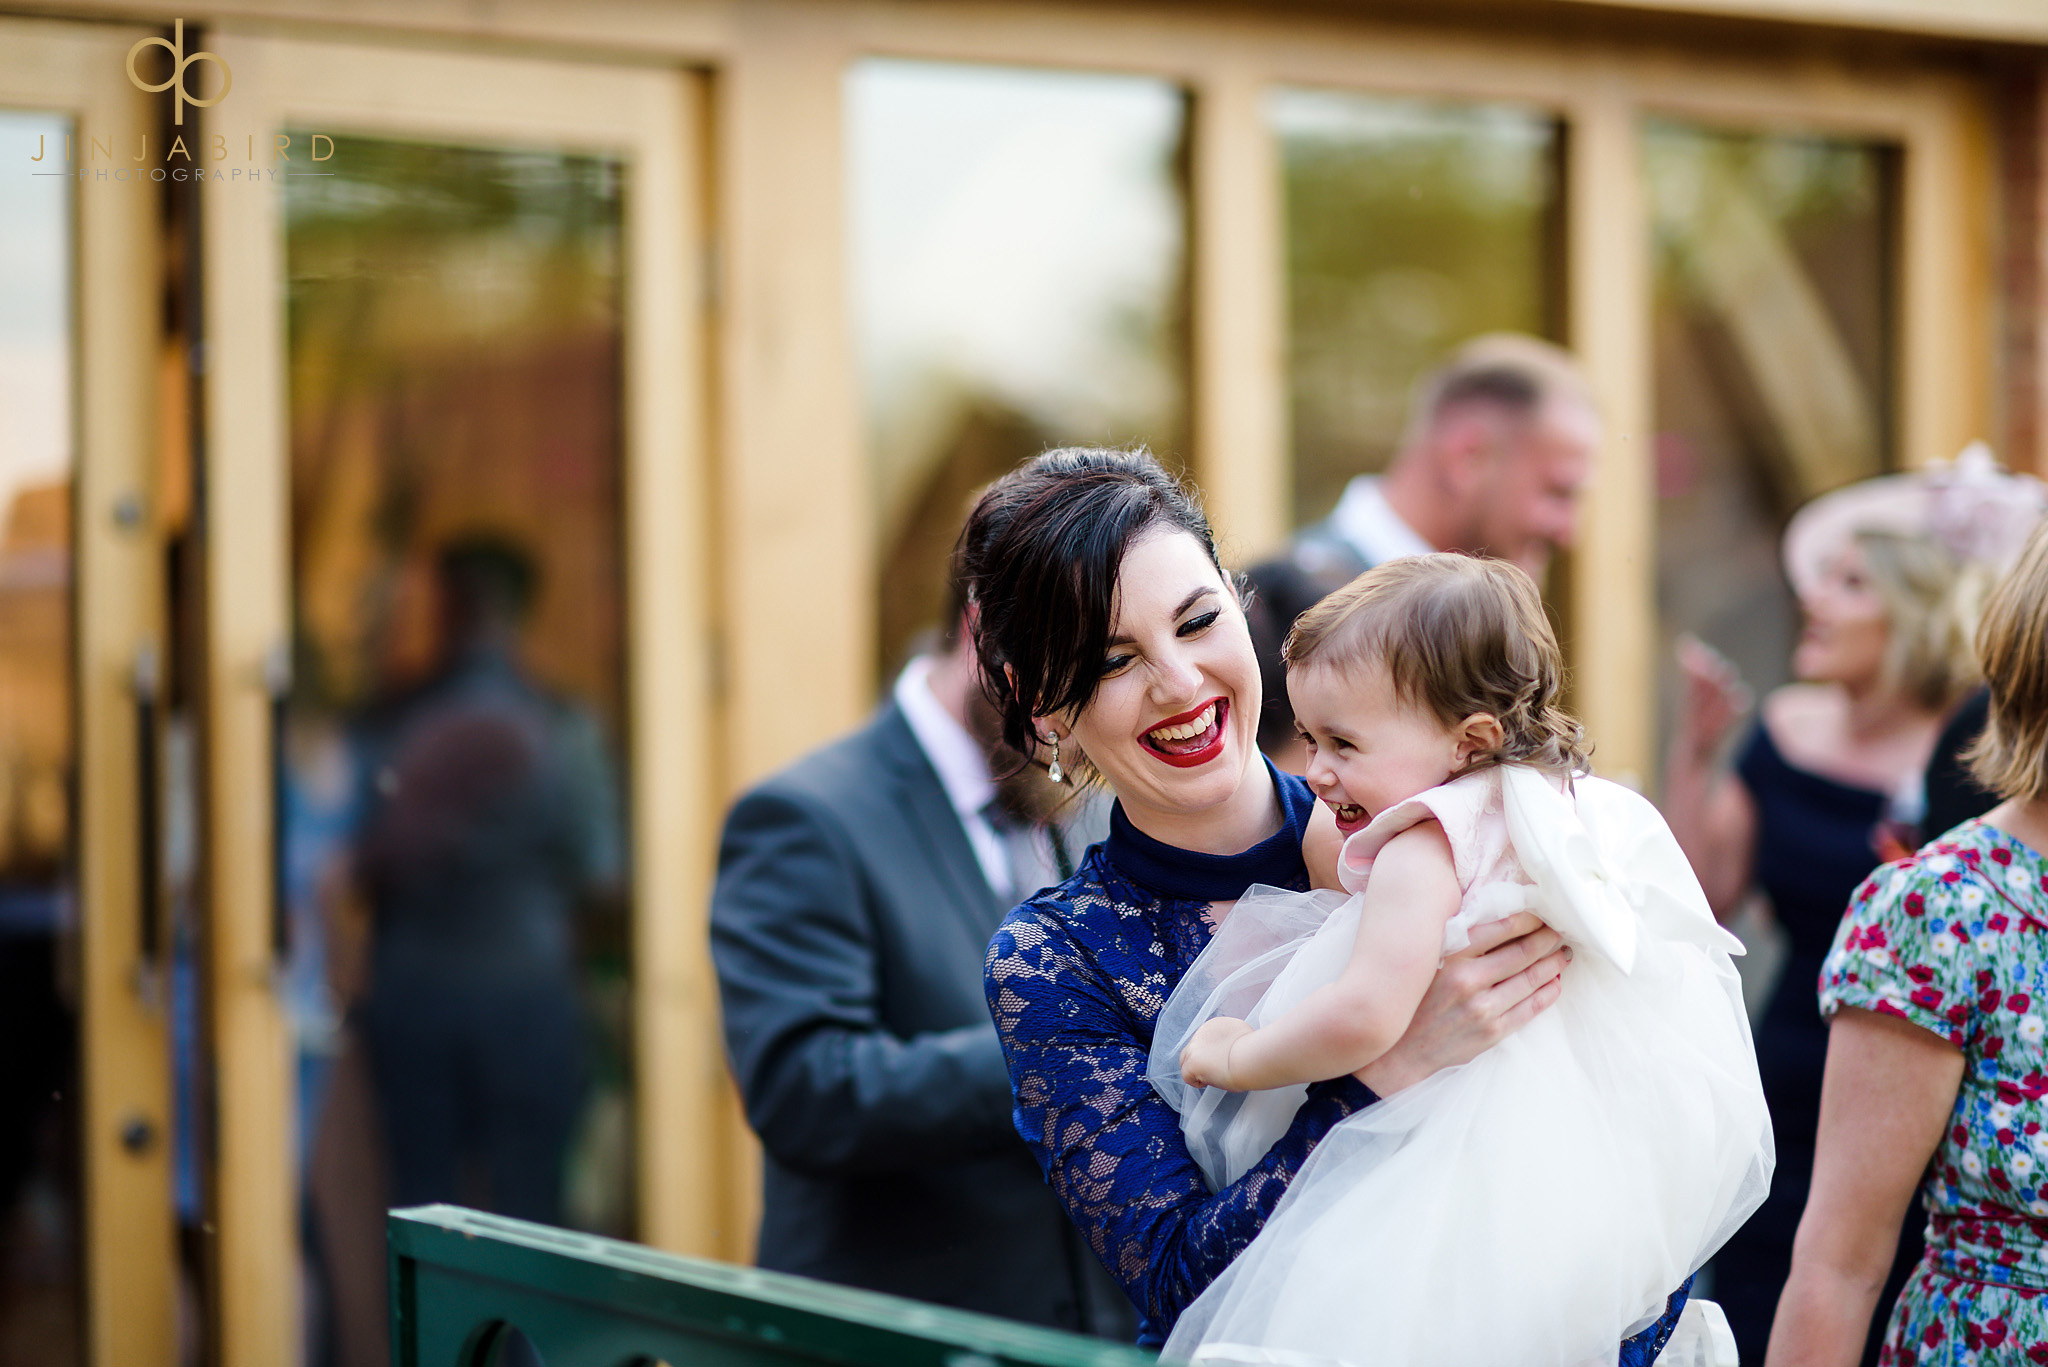 guest holding baby at wedding